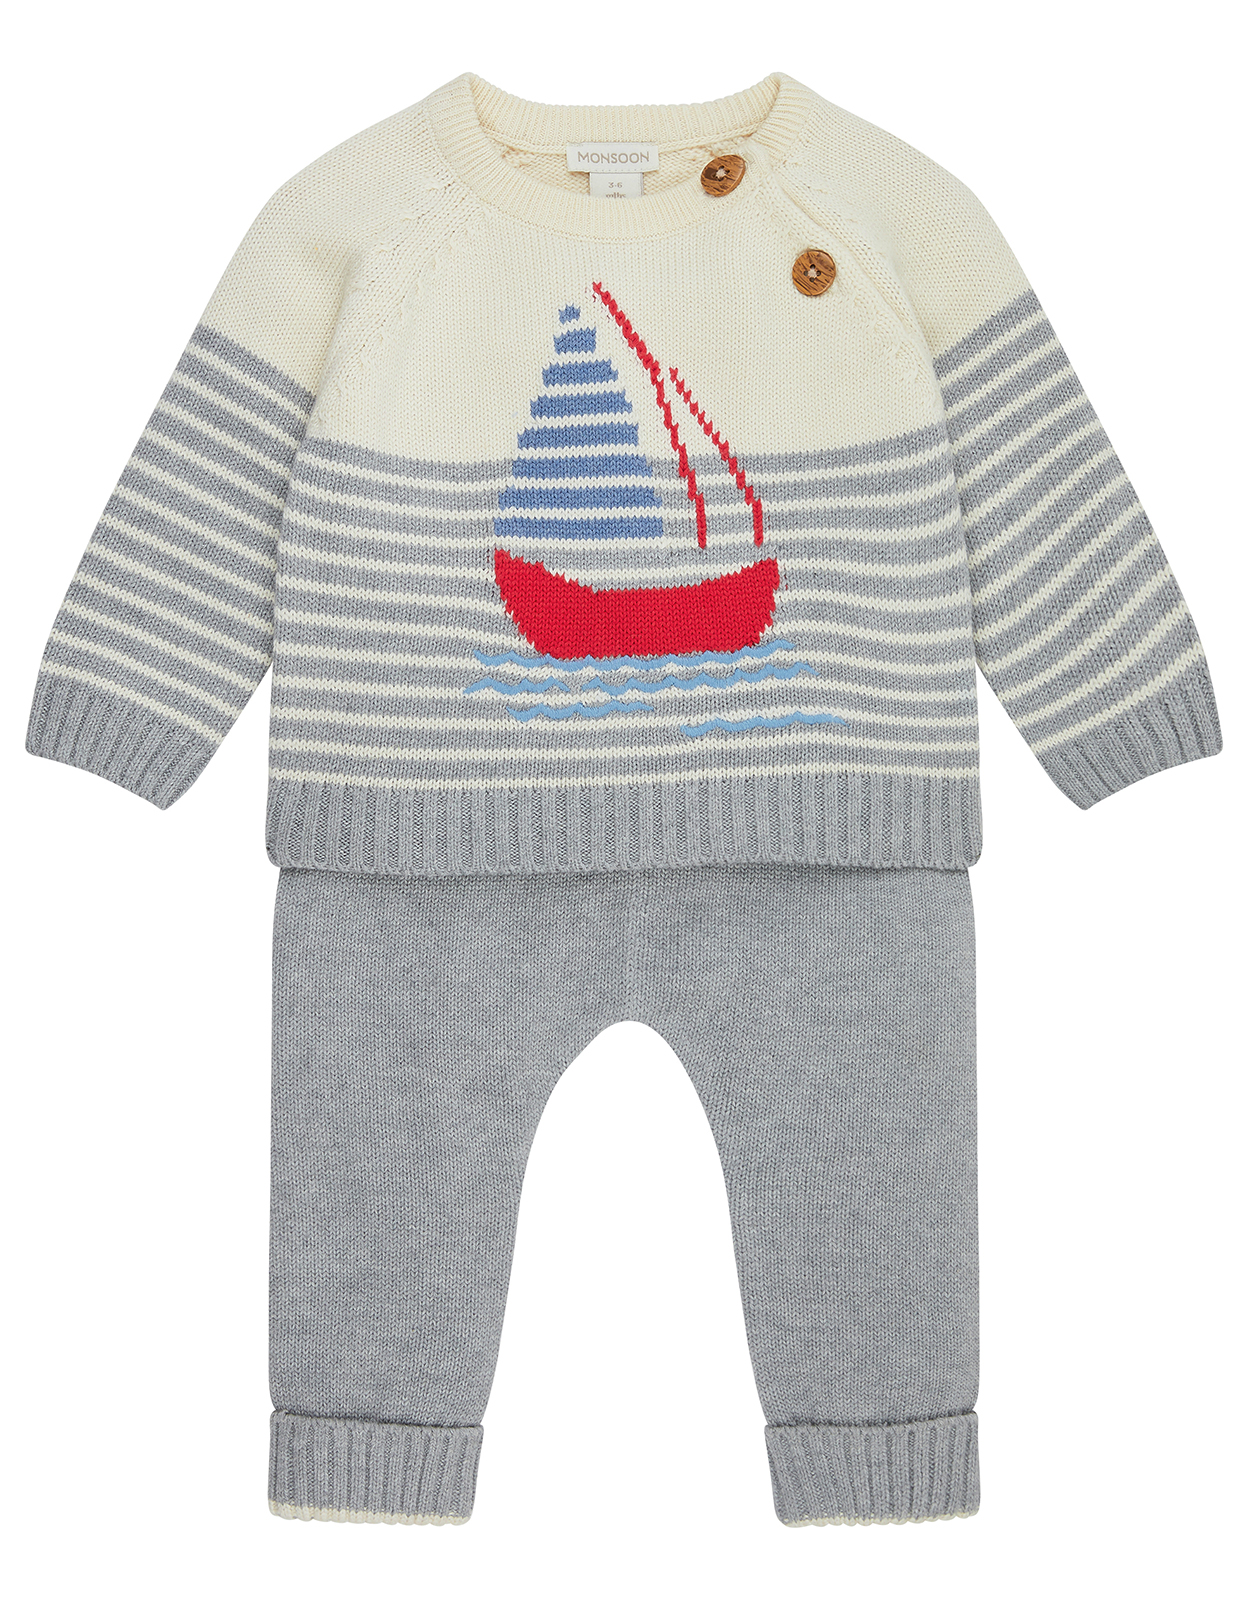 Monsoon Newborn Baby George Knitted Boat Set